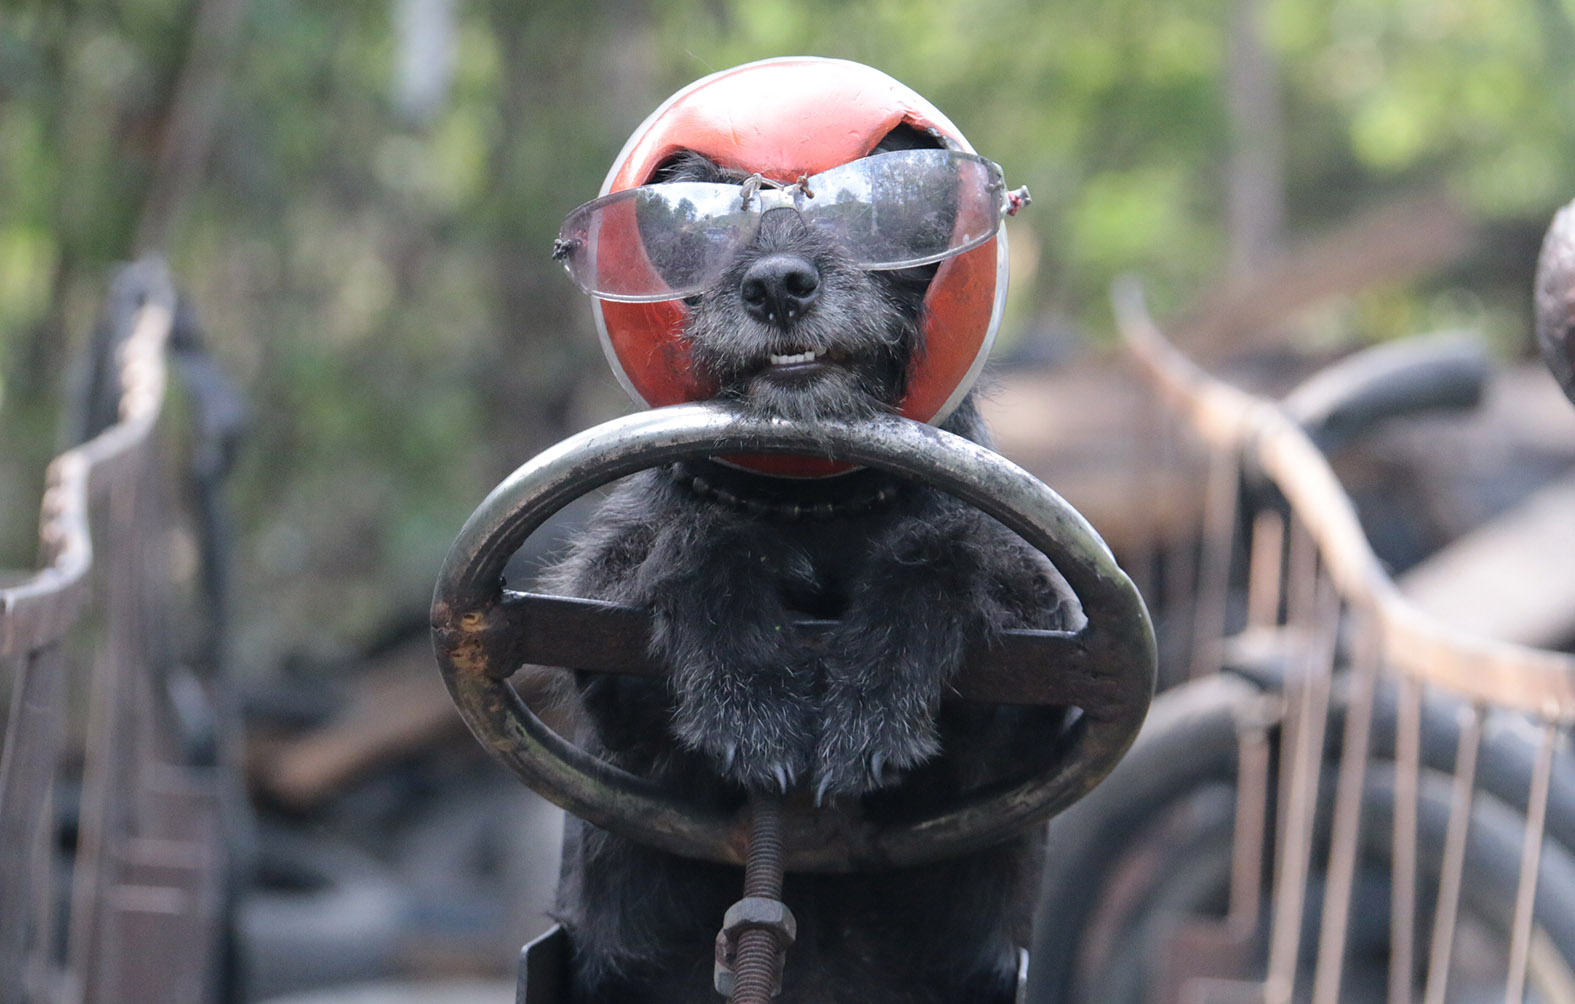 Nasan the poodle traded in his cap for a helmet when Sawang traded in his bicycle for a motorbike with sidecar and trailer.